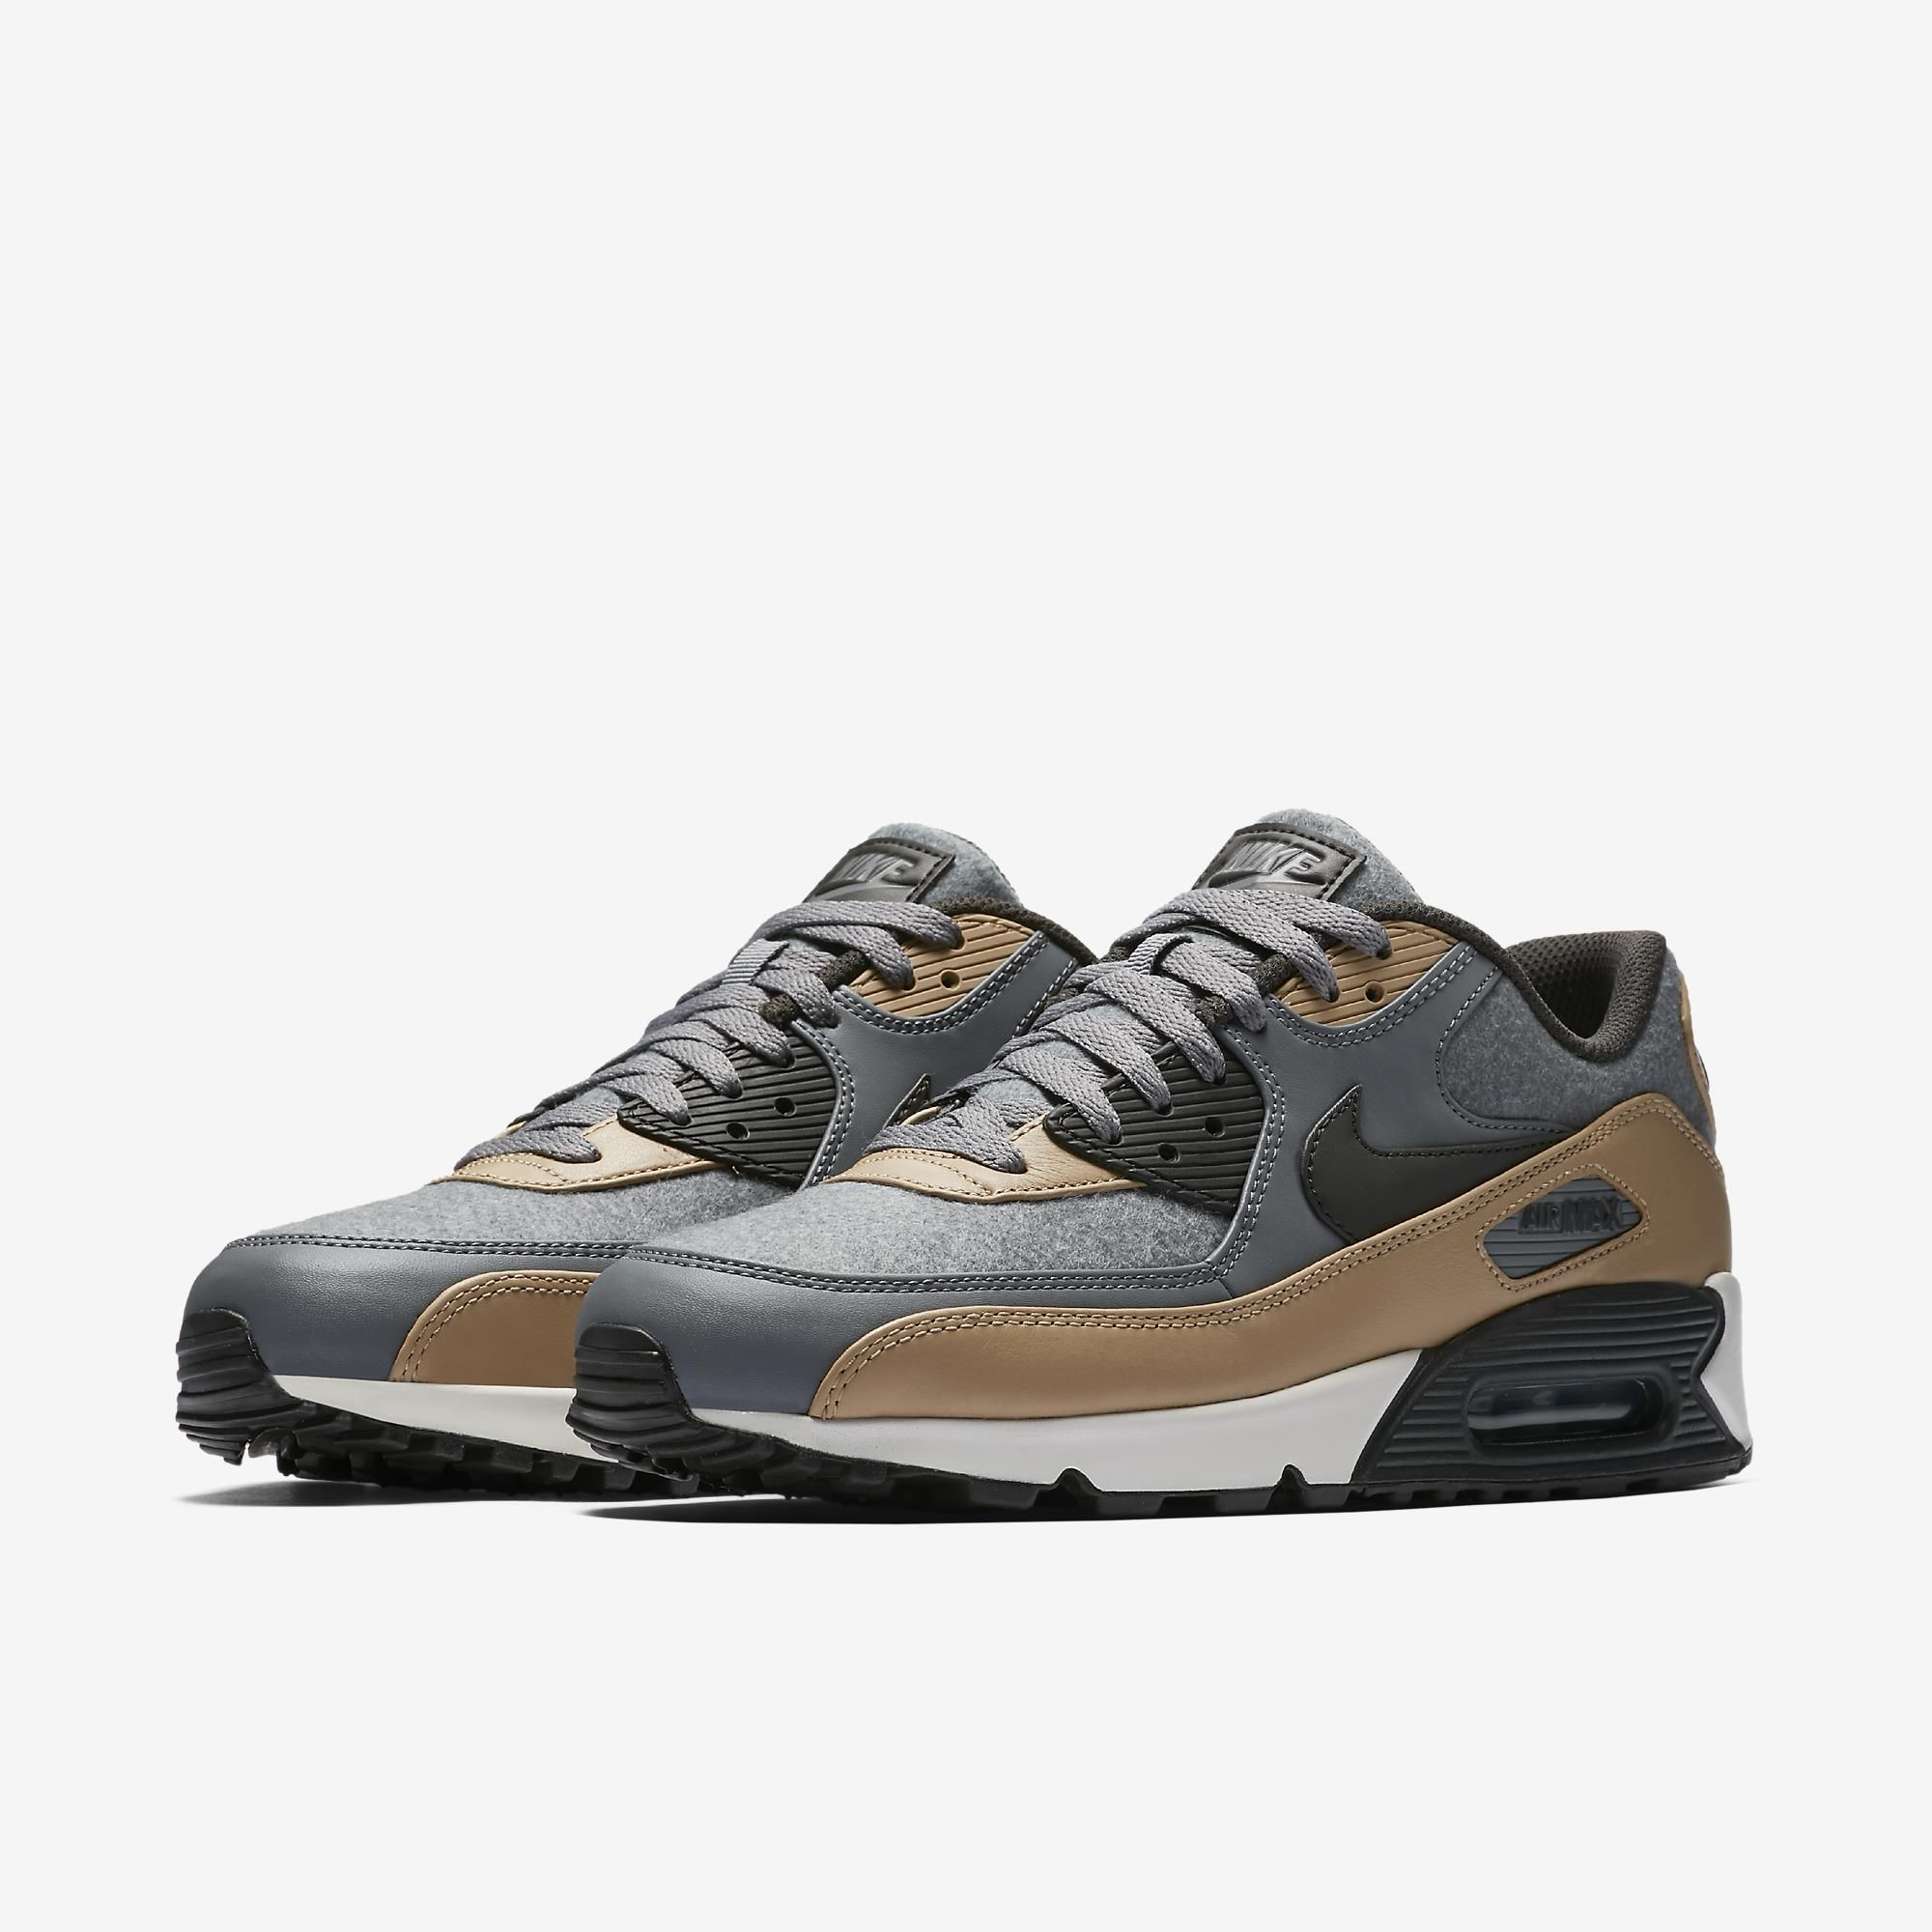 official photos 8f07d 33d62 Tênis Nike Air Max 90 Premium Masculino | must have | Sneakers nike ...